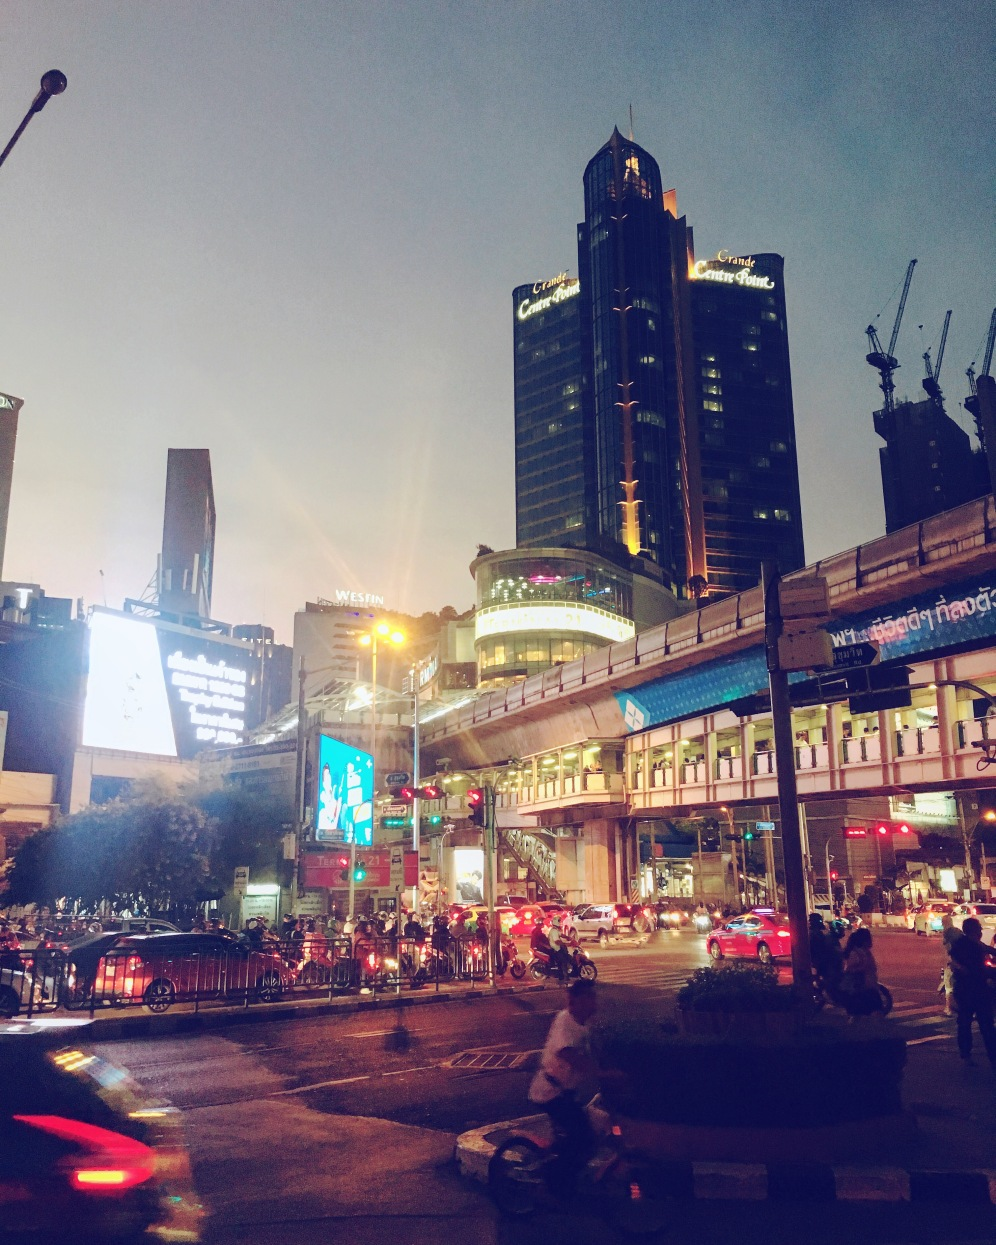 Getting caught up in the buzz that is Bangkok